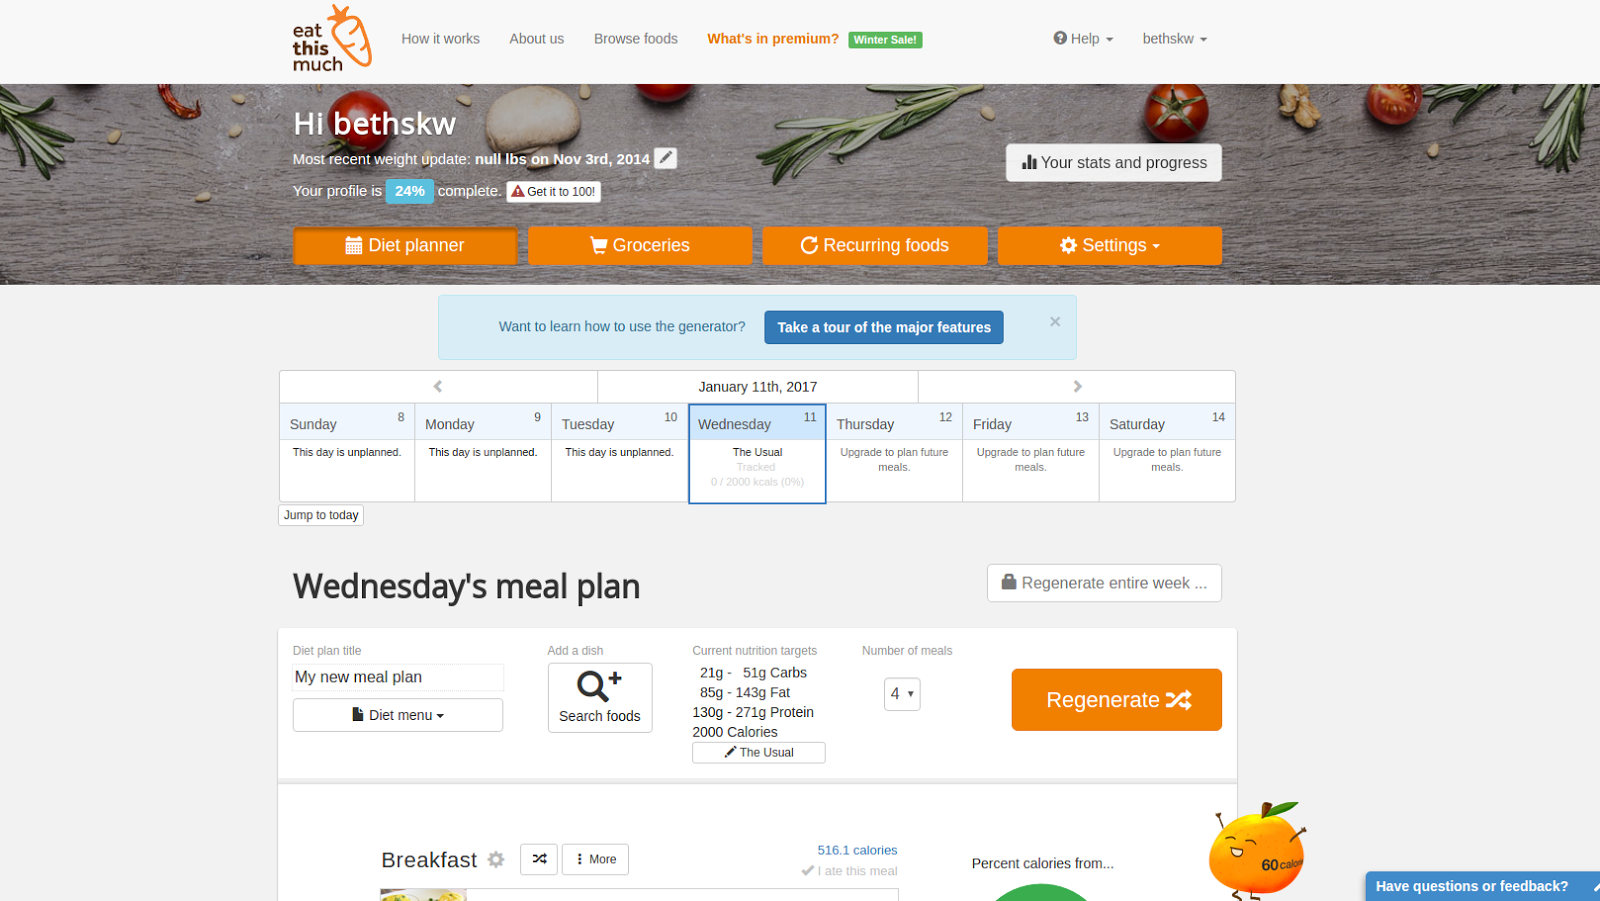 Eat This Much Adds A Calendar And Statistics To Free Accounts